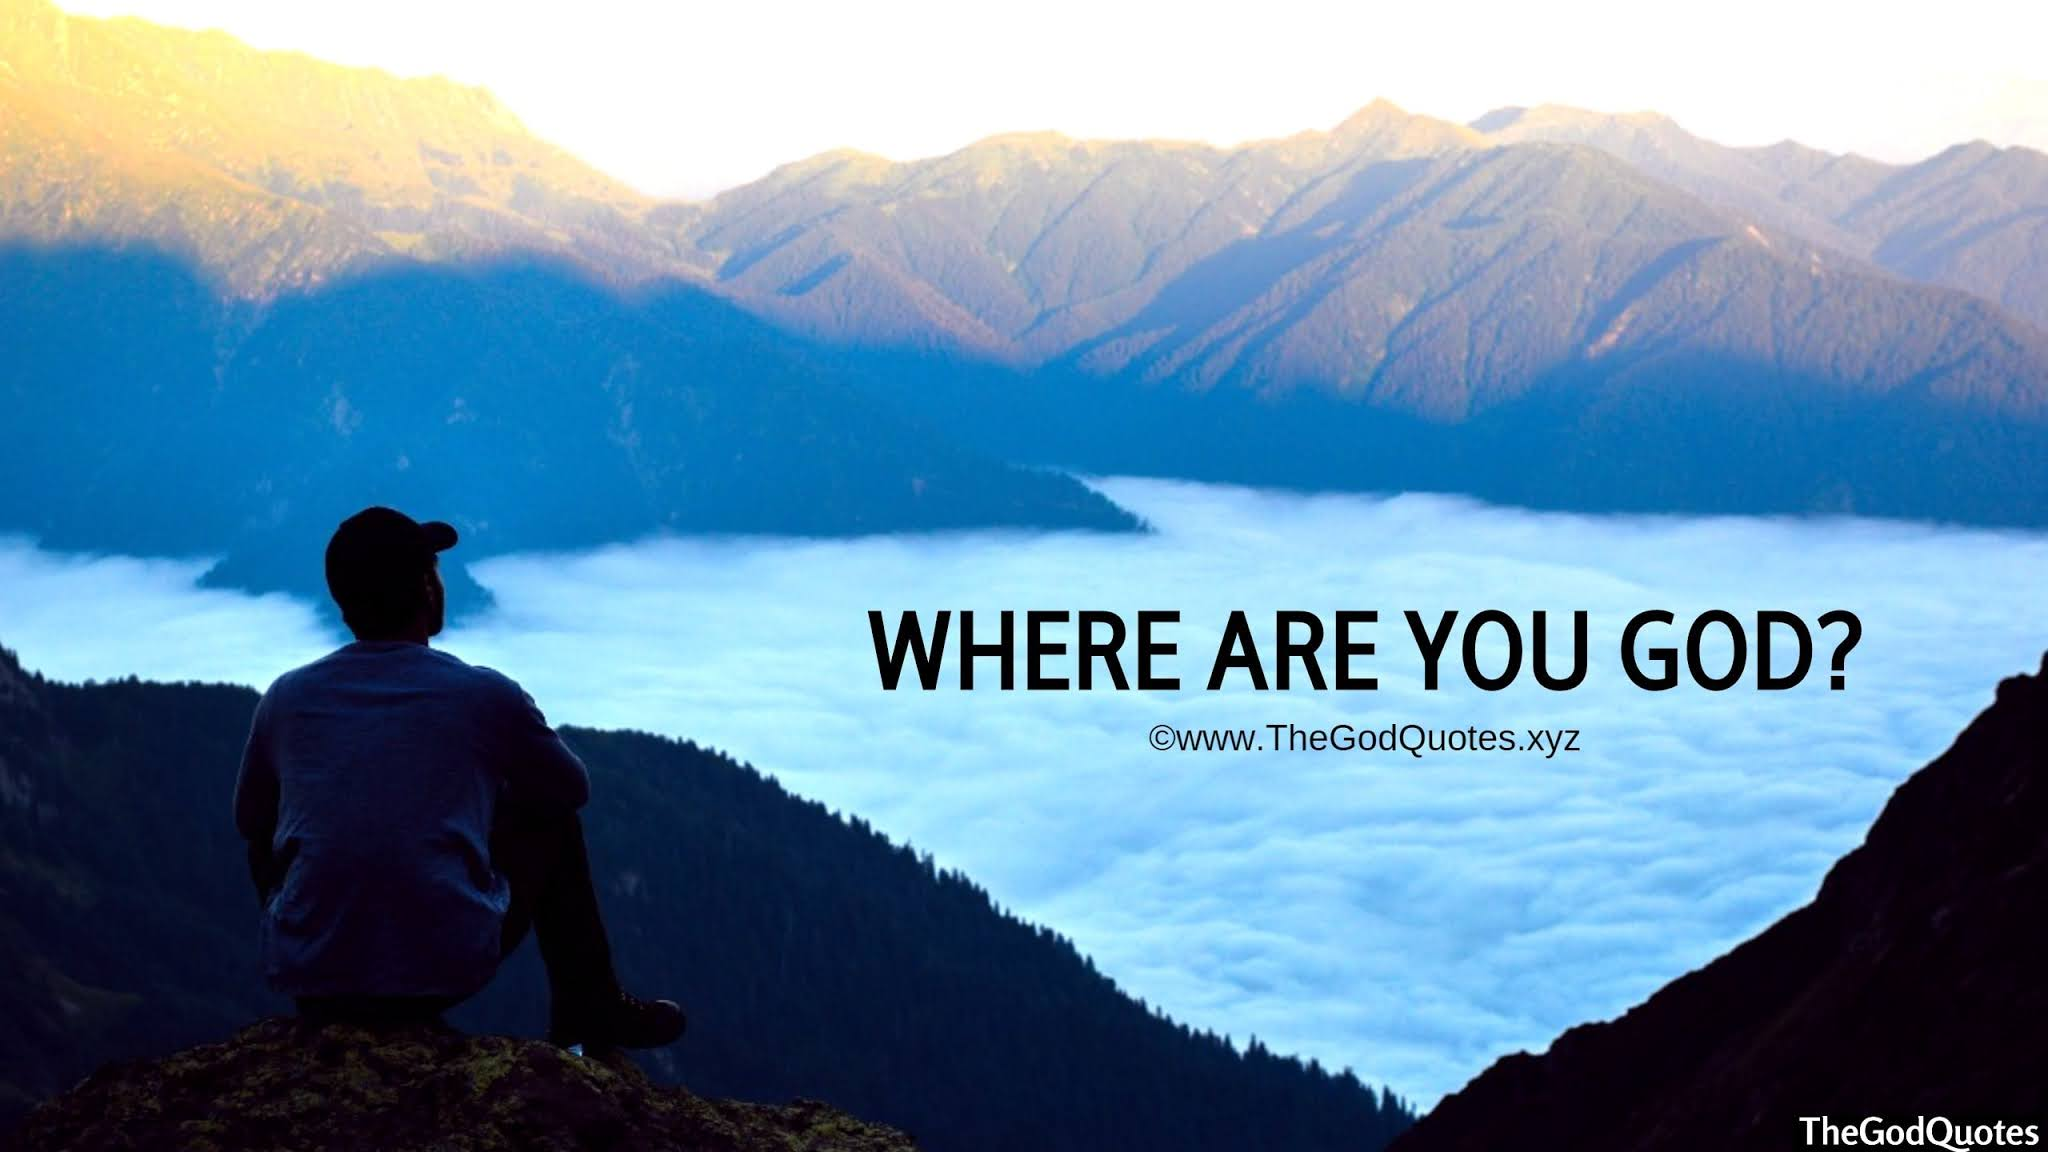 How To Find God: Where Are You God